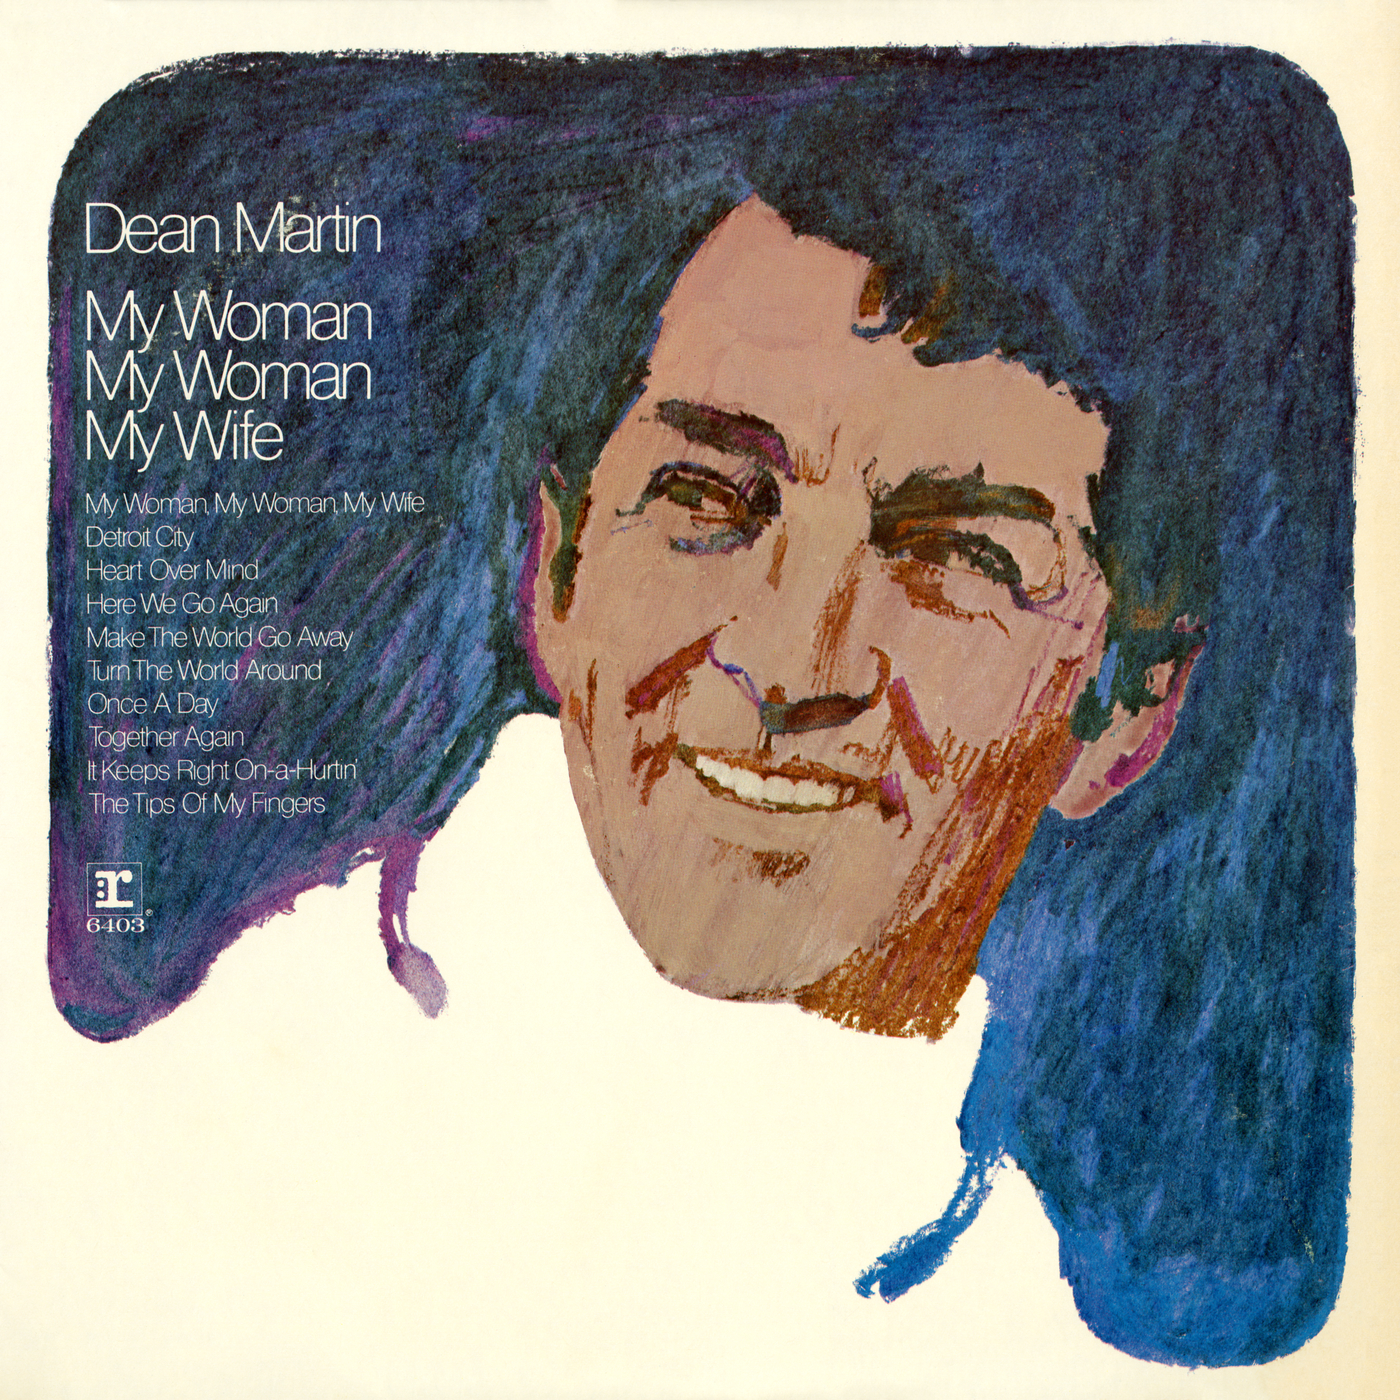 My Woman, My Woman, My Wife - Dean Martin